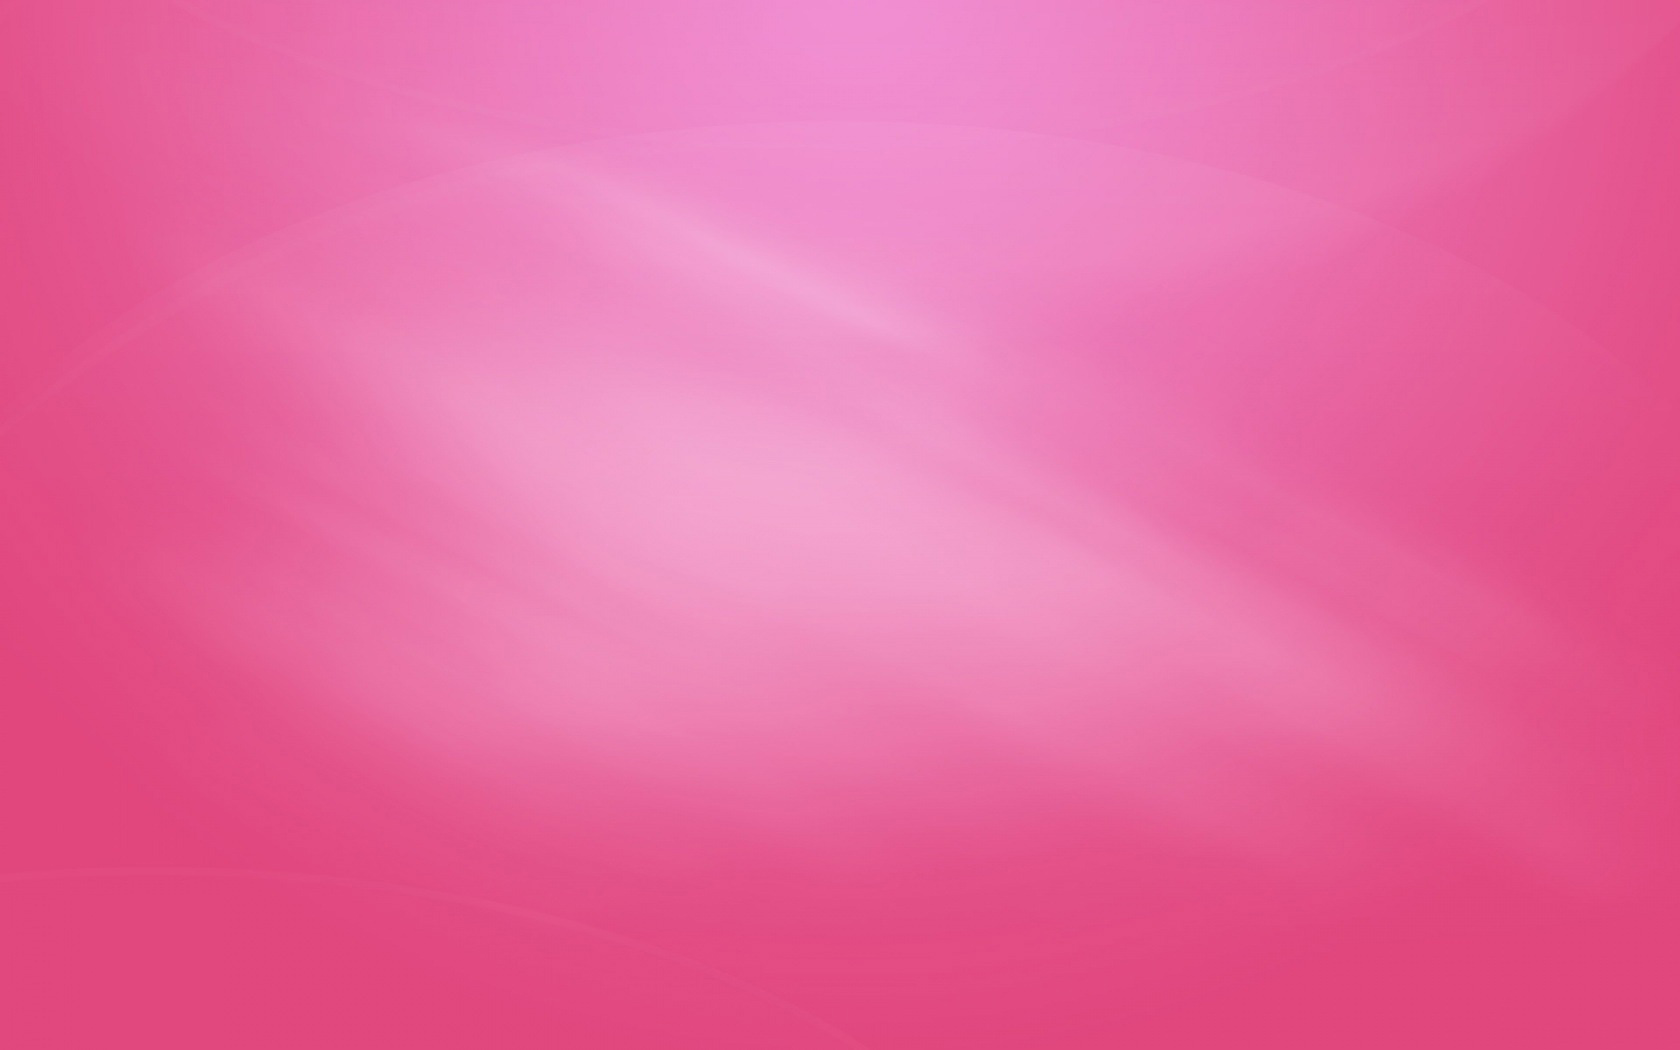 hot pink wallpapers for desktop - photo #8